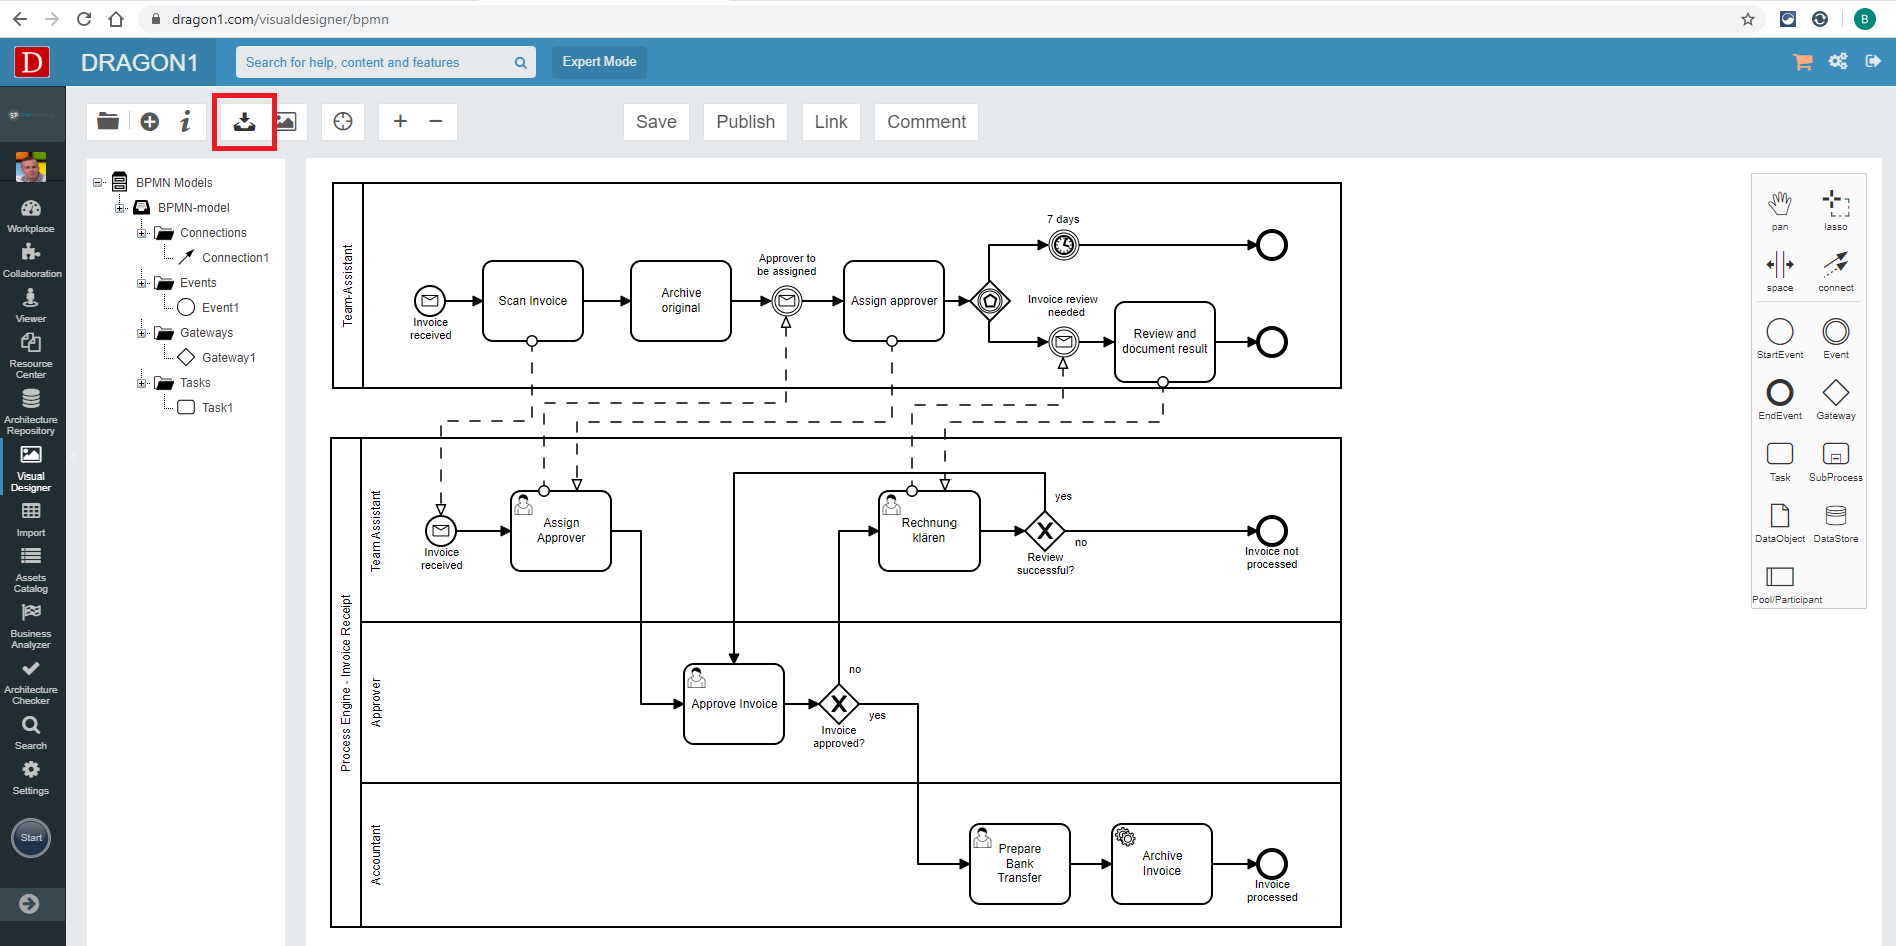 Export a BPMN file from the Visual Designer